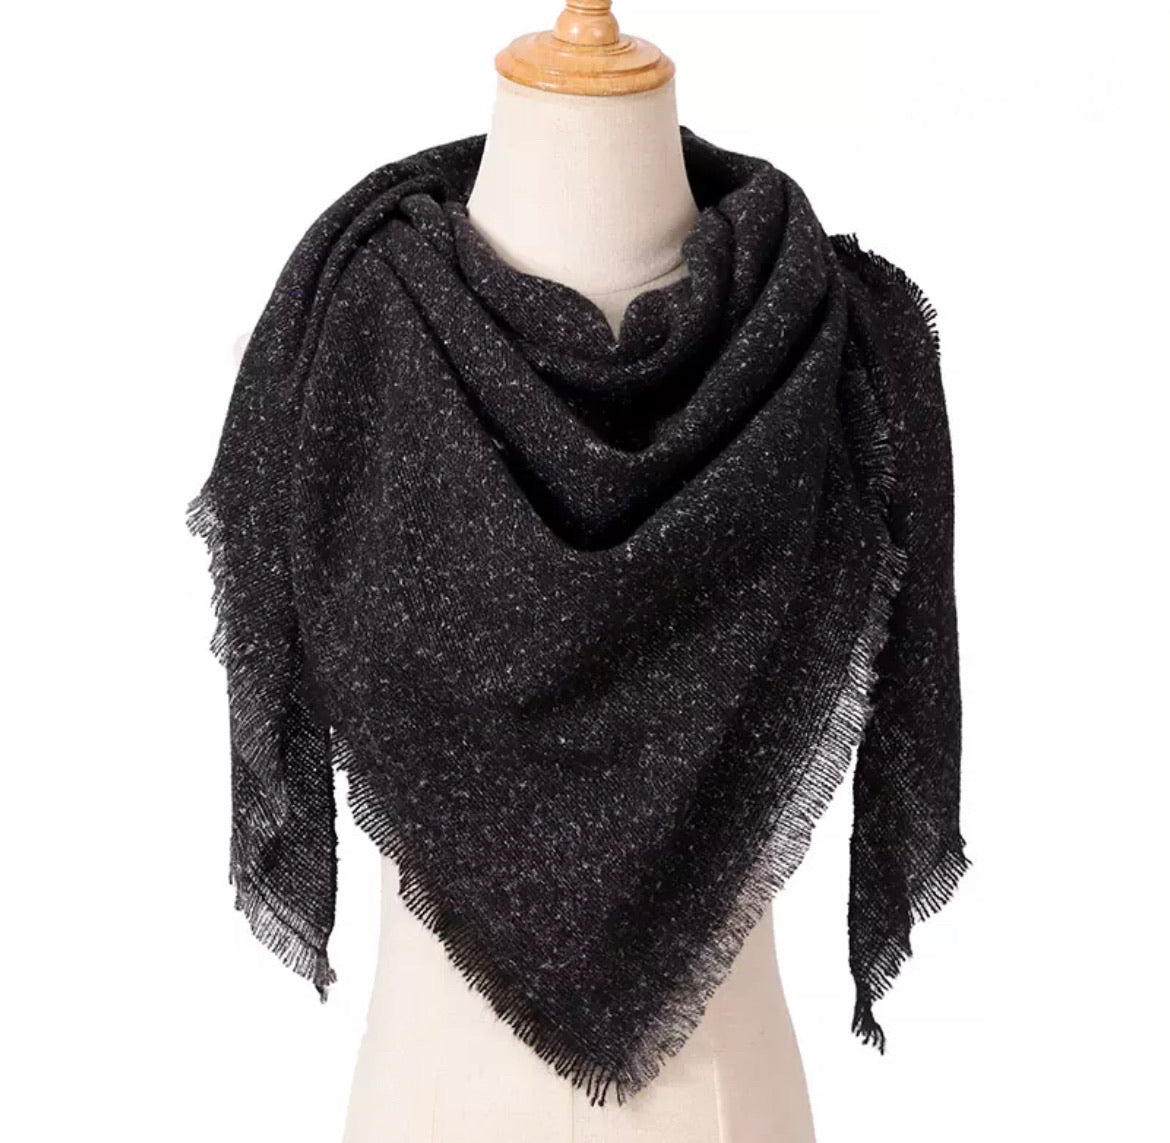 Heathered Black Triangle Blanket Scarf